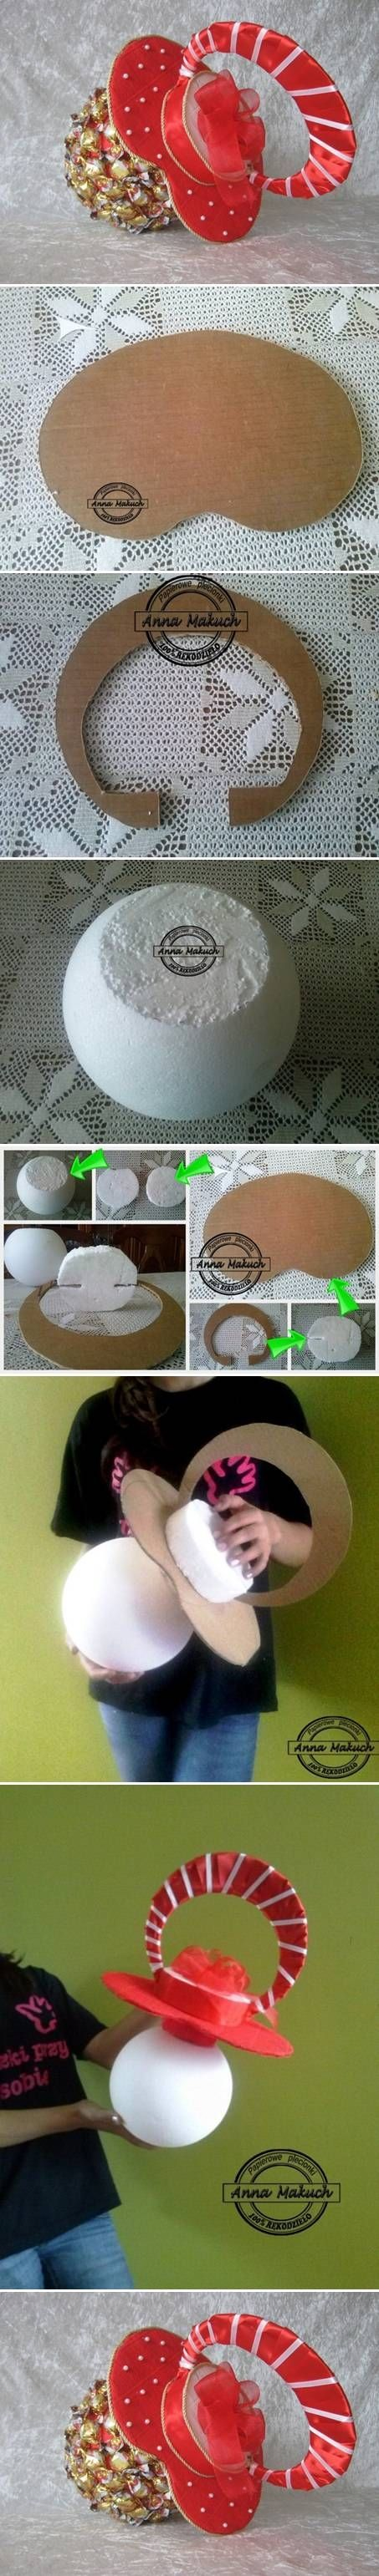 DIY Candy Pacifier Pictures, Photos, and Images for Facebook, Tumblr, Pinterest, and Twitter